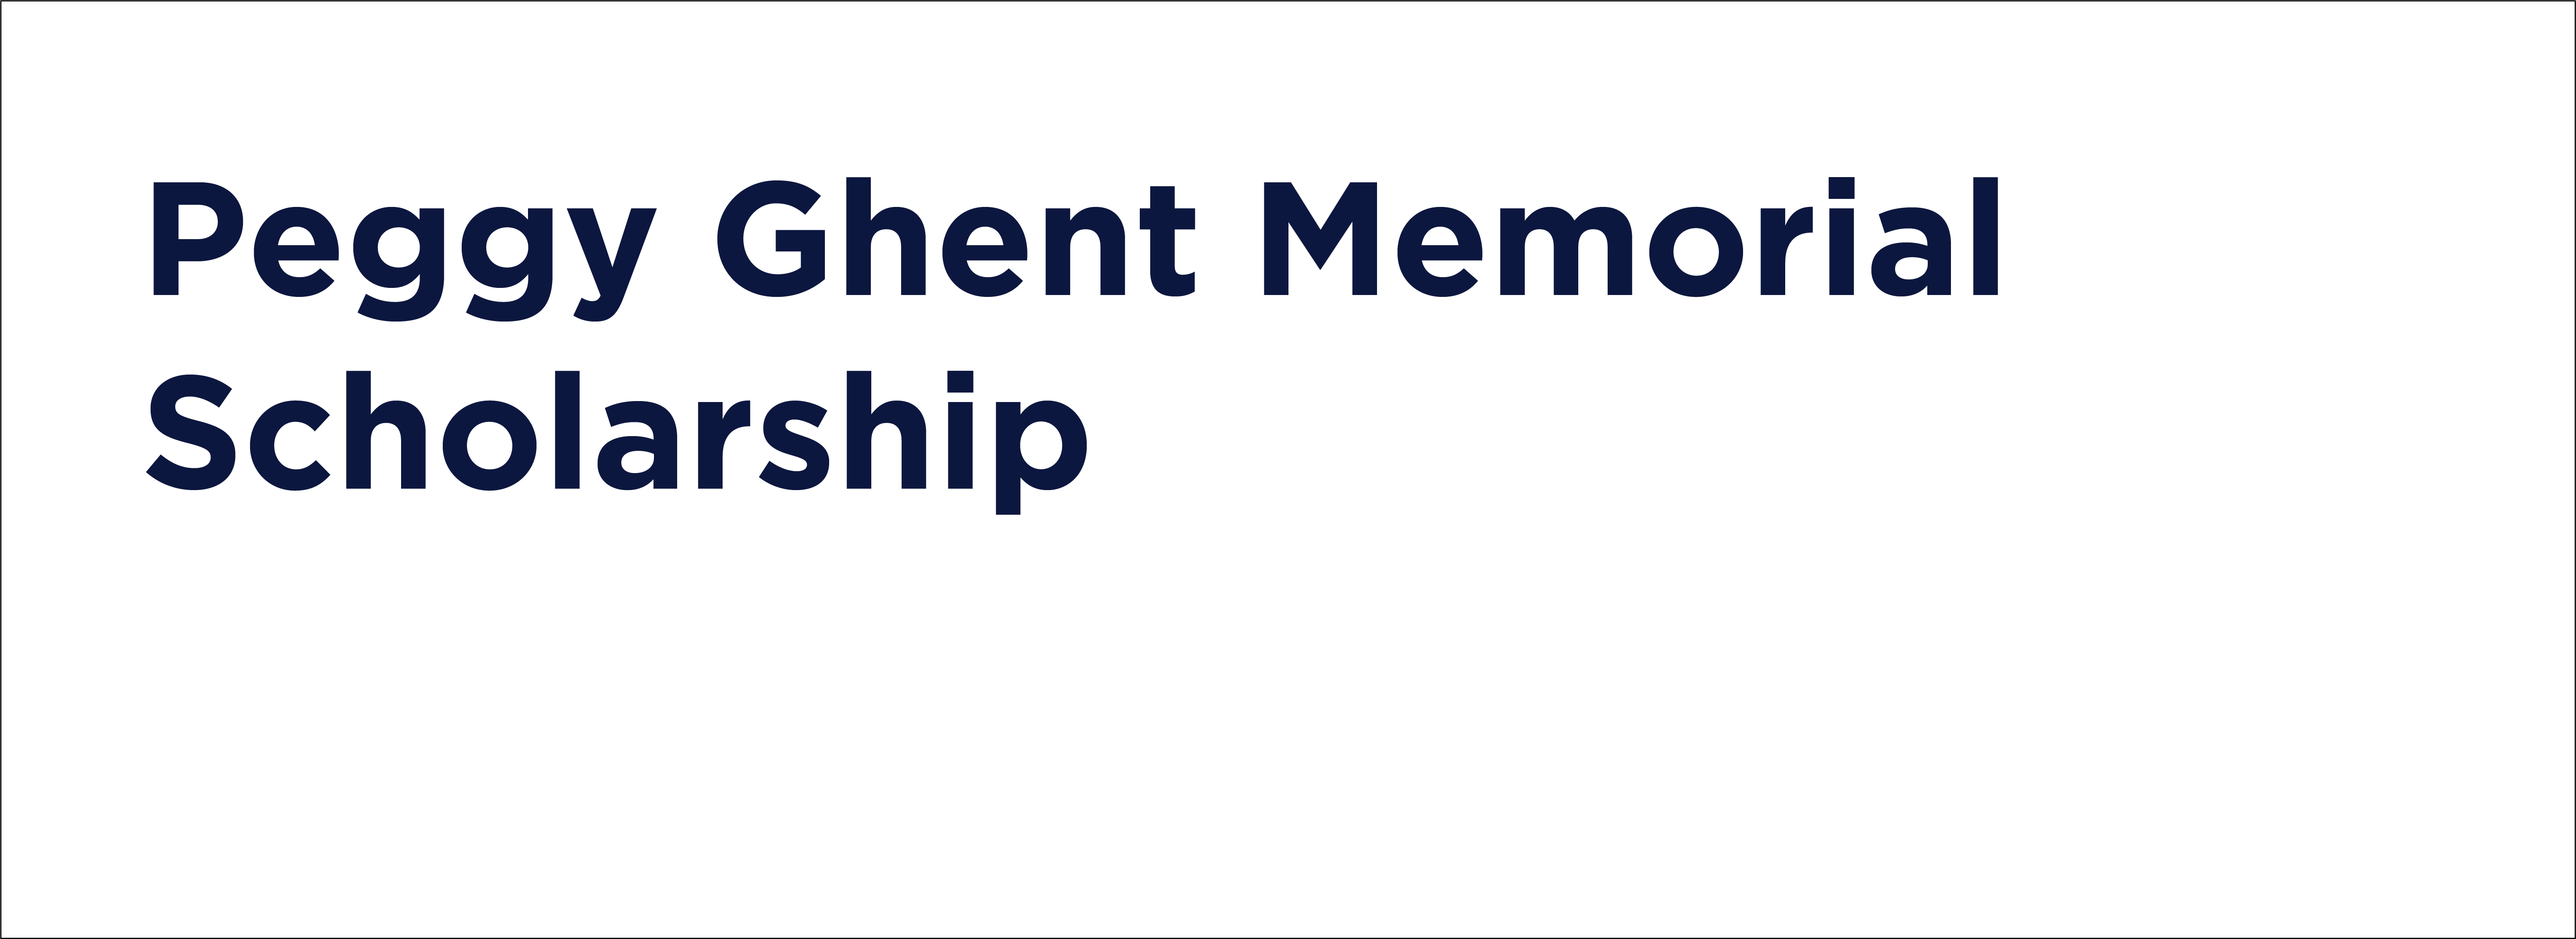 ghent memorial scholarship text